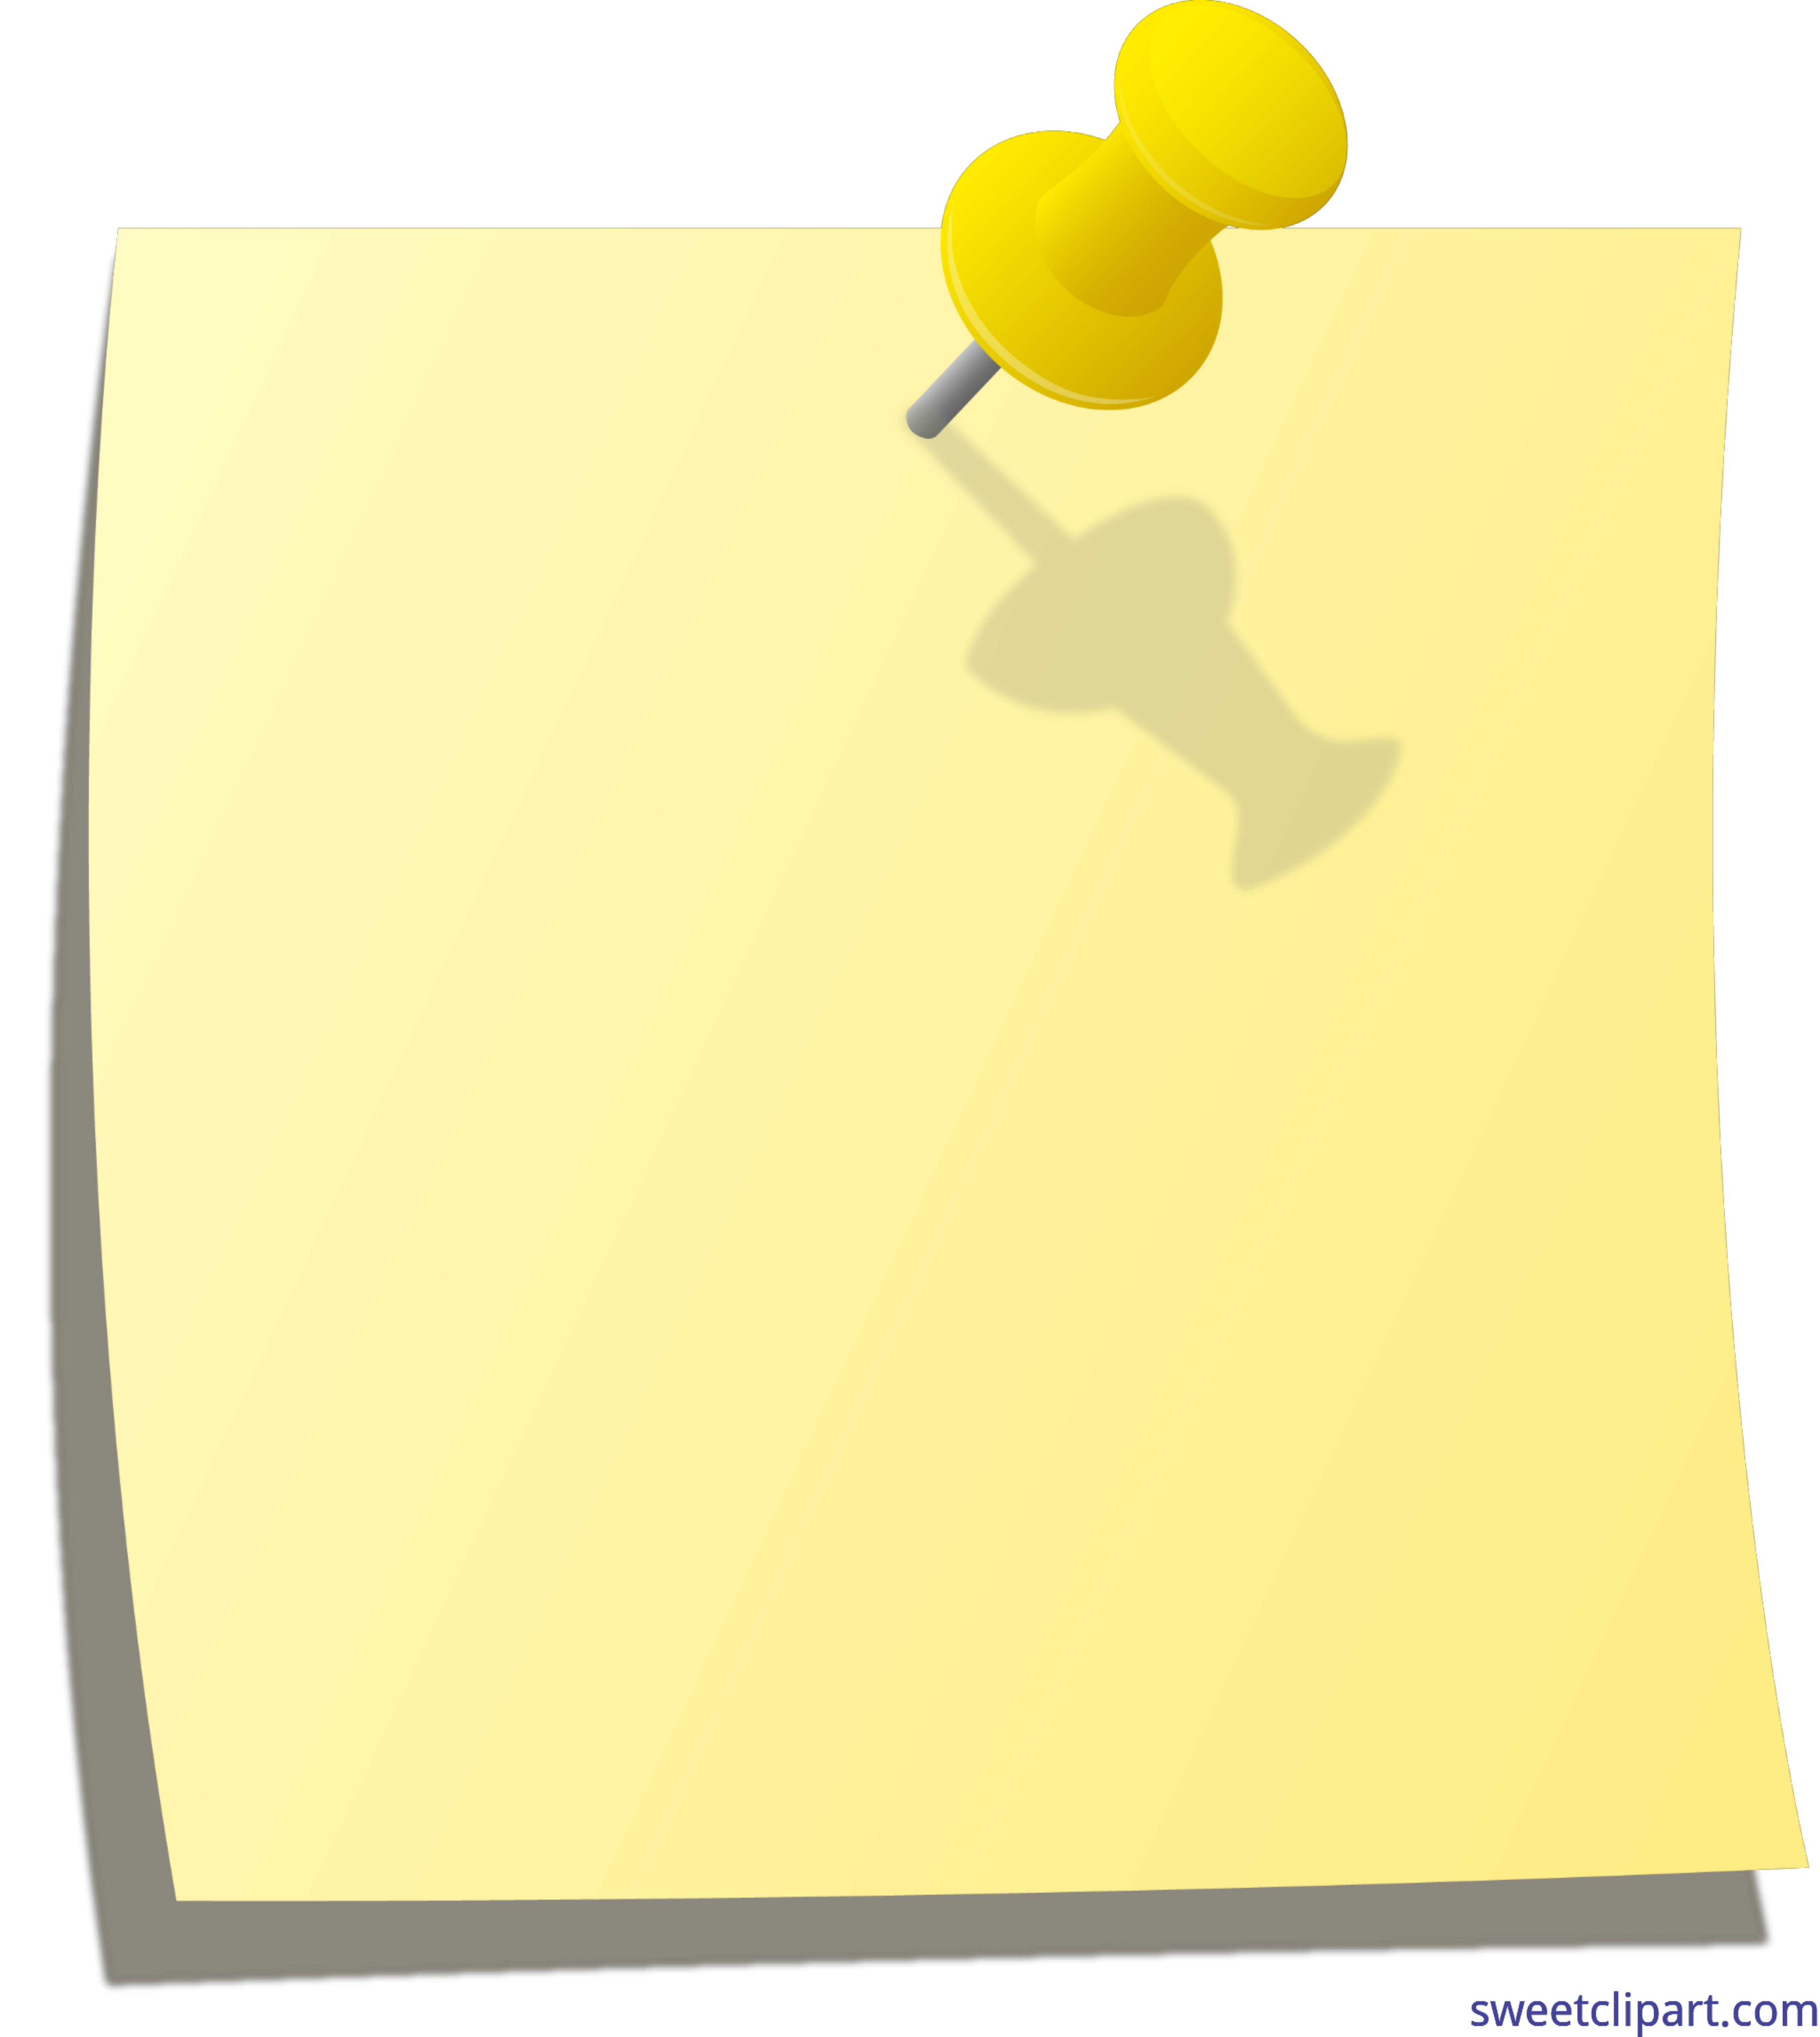 clipart free library Thumbtack Note Yellow Clip Art